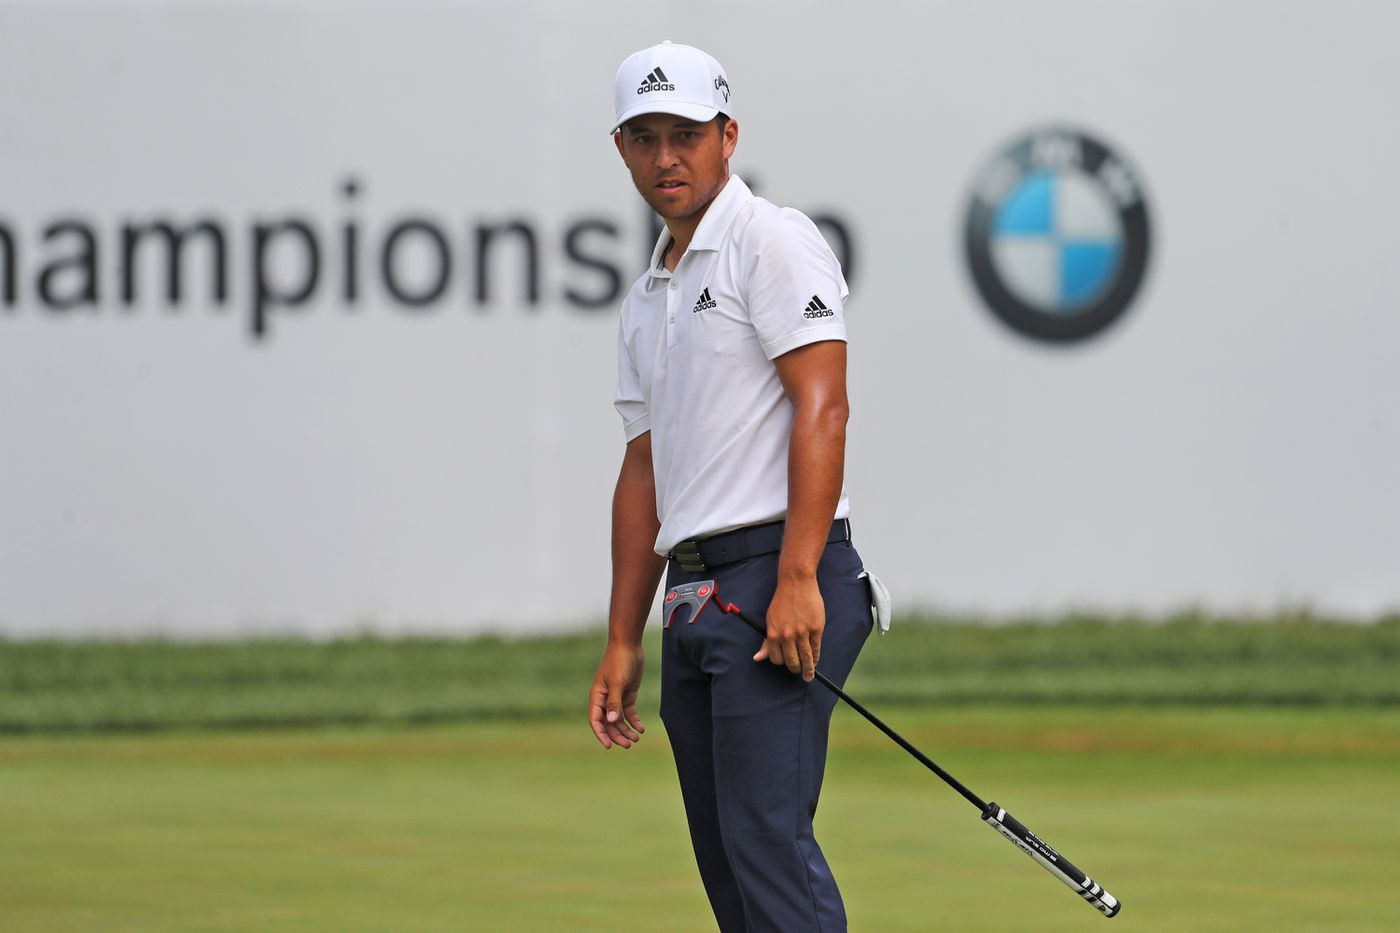 Tony Finau, Xander Schauffele aim for final U.S. Ryder Cup team spot at BMW Championship